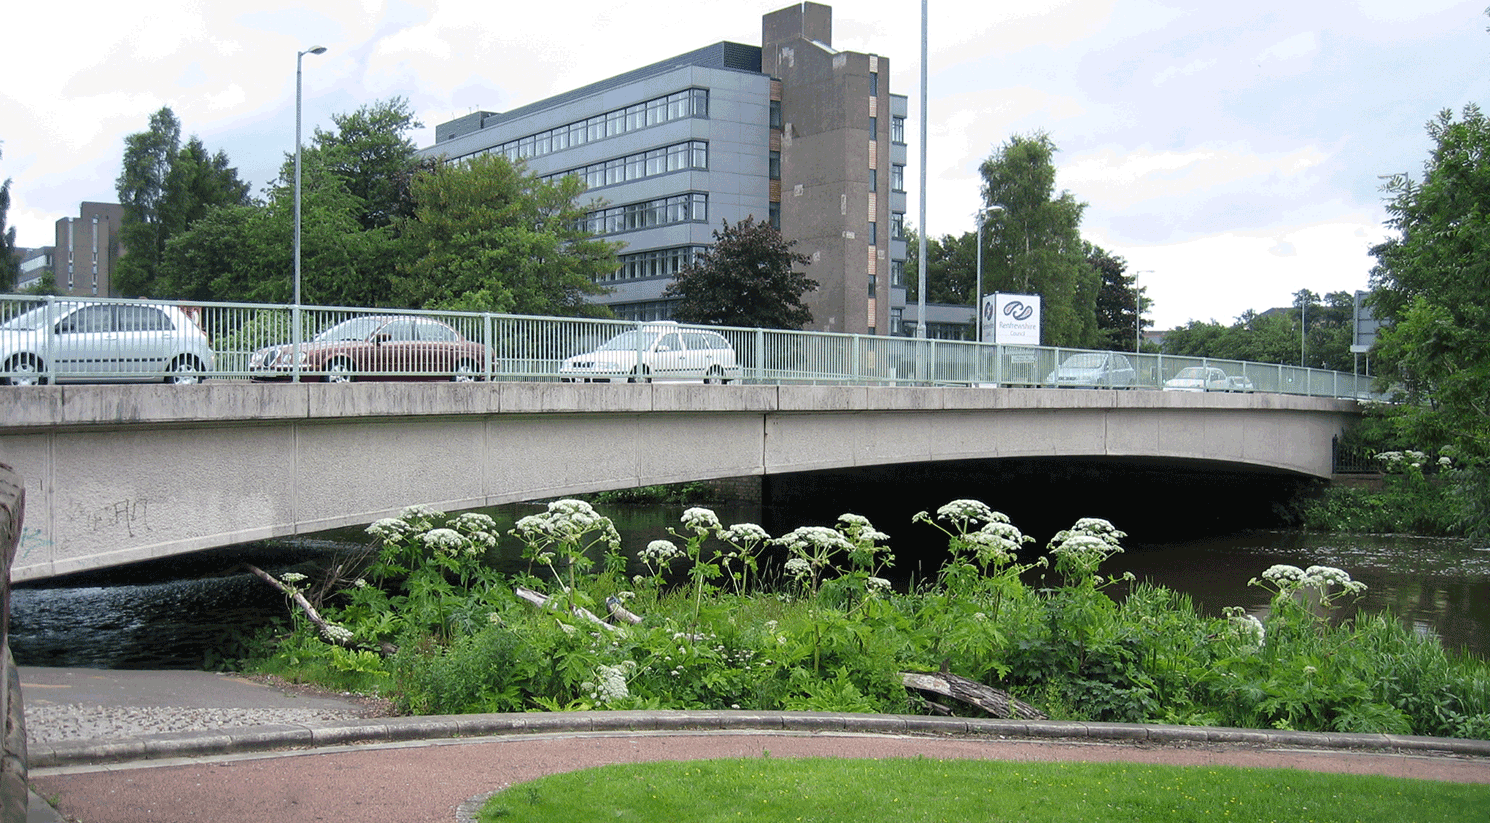 Hammills Bridge